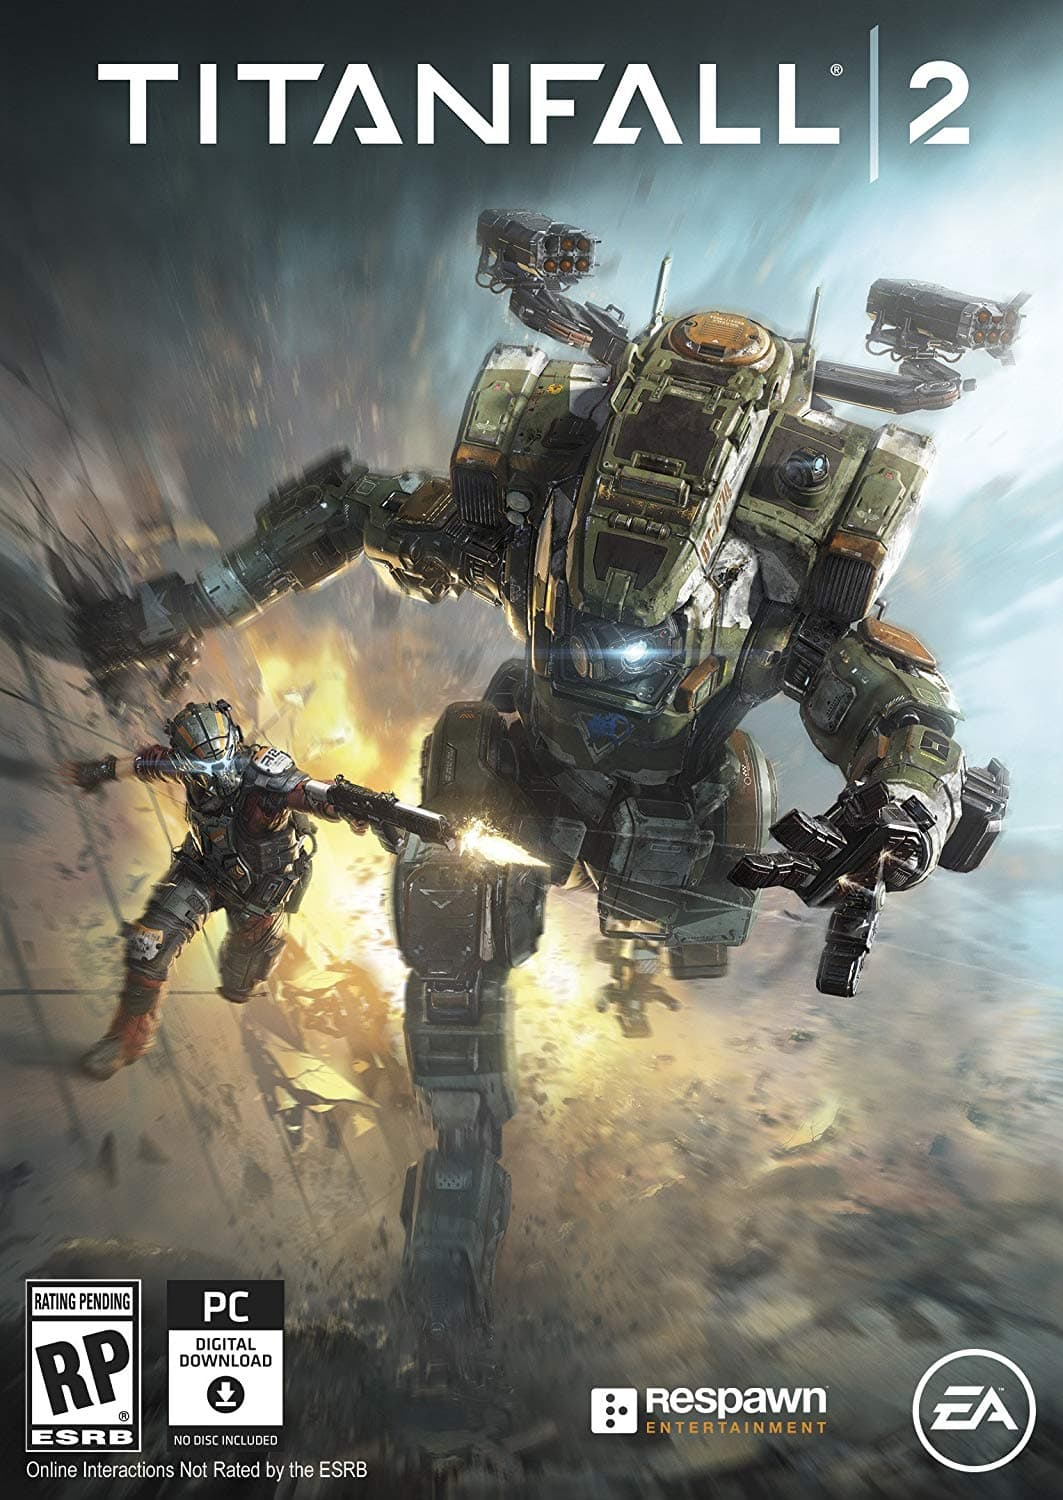 Titanfall 2 PC game code $4.99